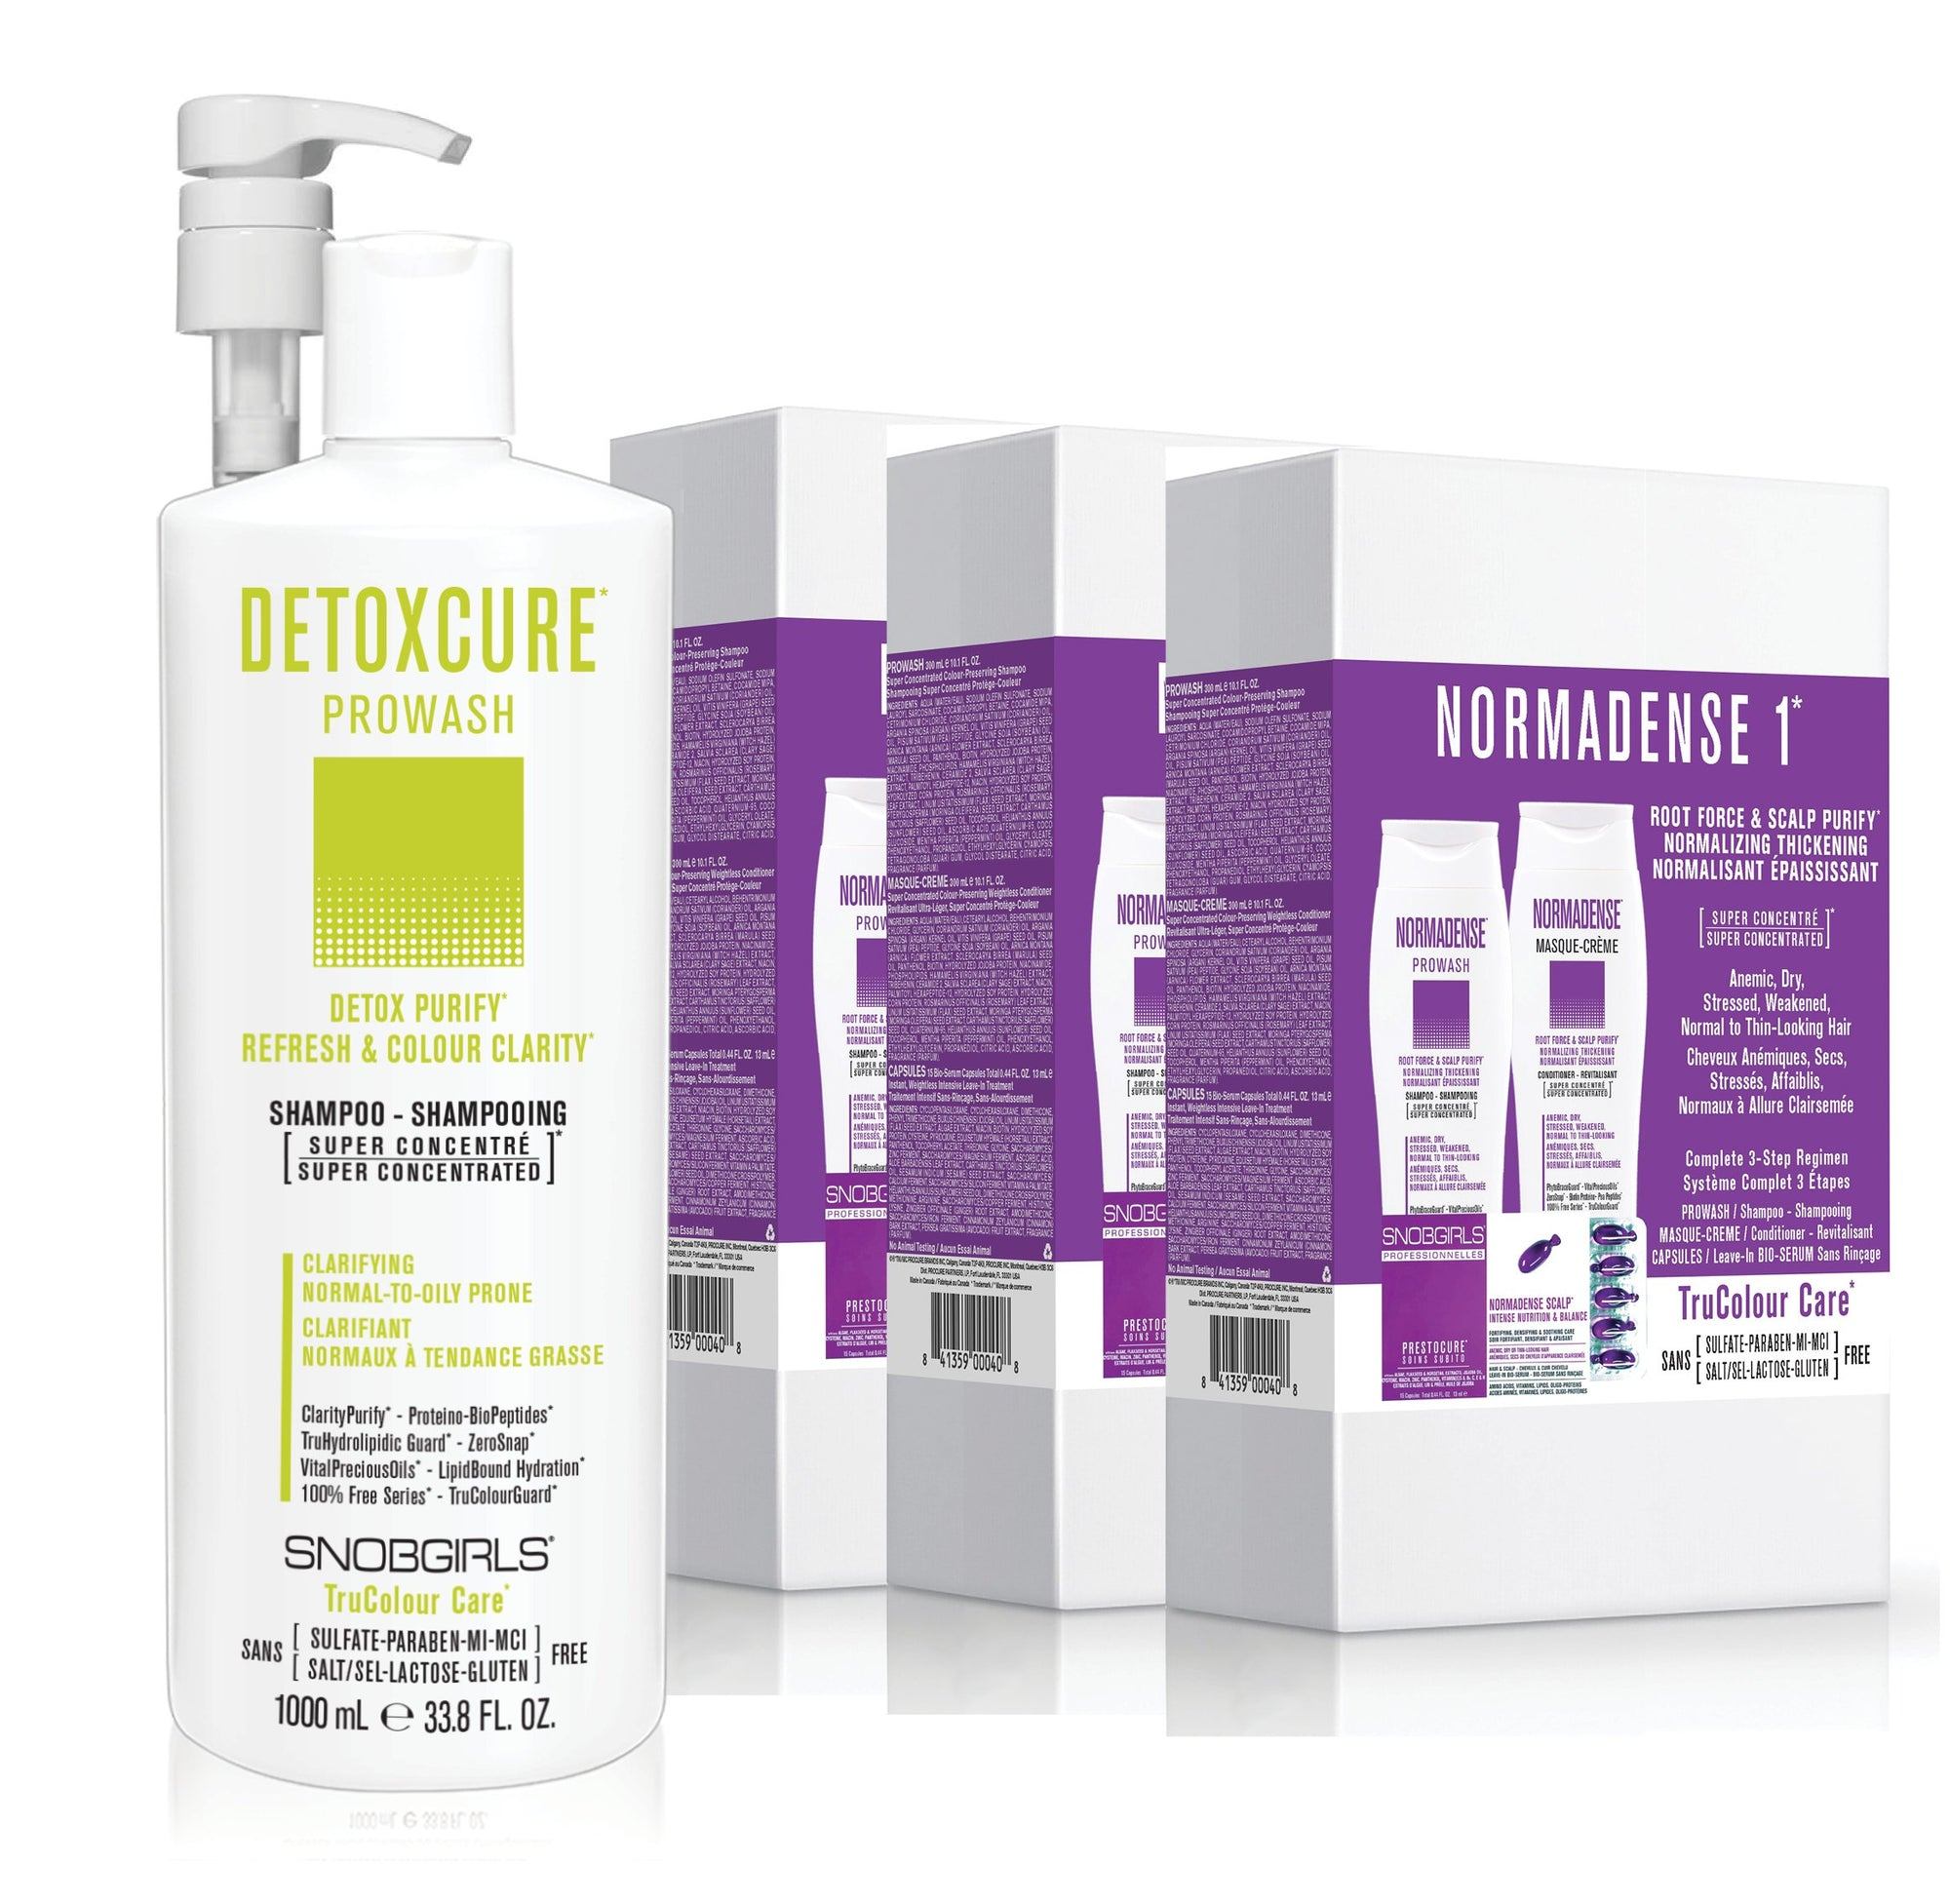 GIFT SETS- 3 X Trio NORMADENSE 1 Normalizing Thickening + Detoxcure Prowash Liter - SNOBGIRLS.com